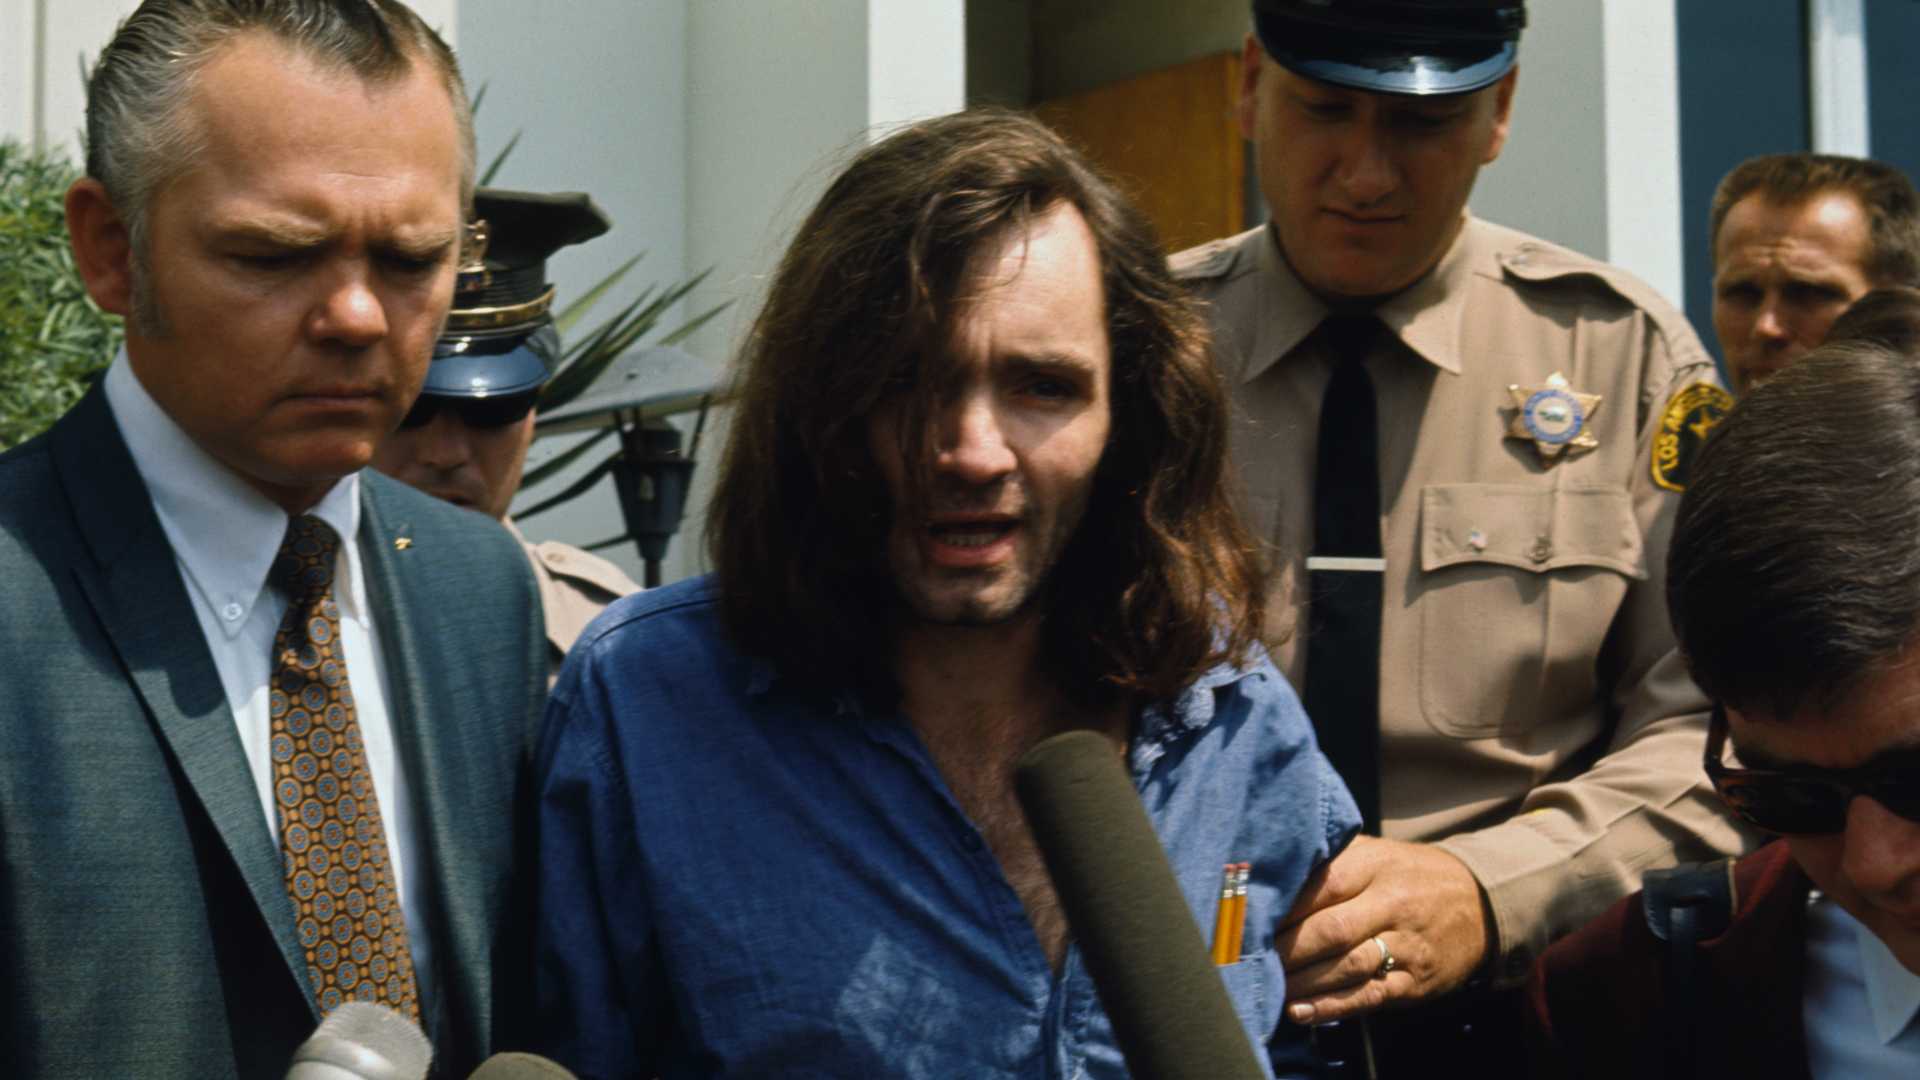 Charles Manson at court